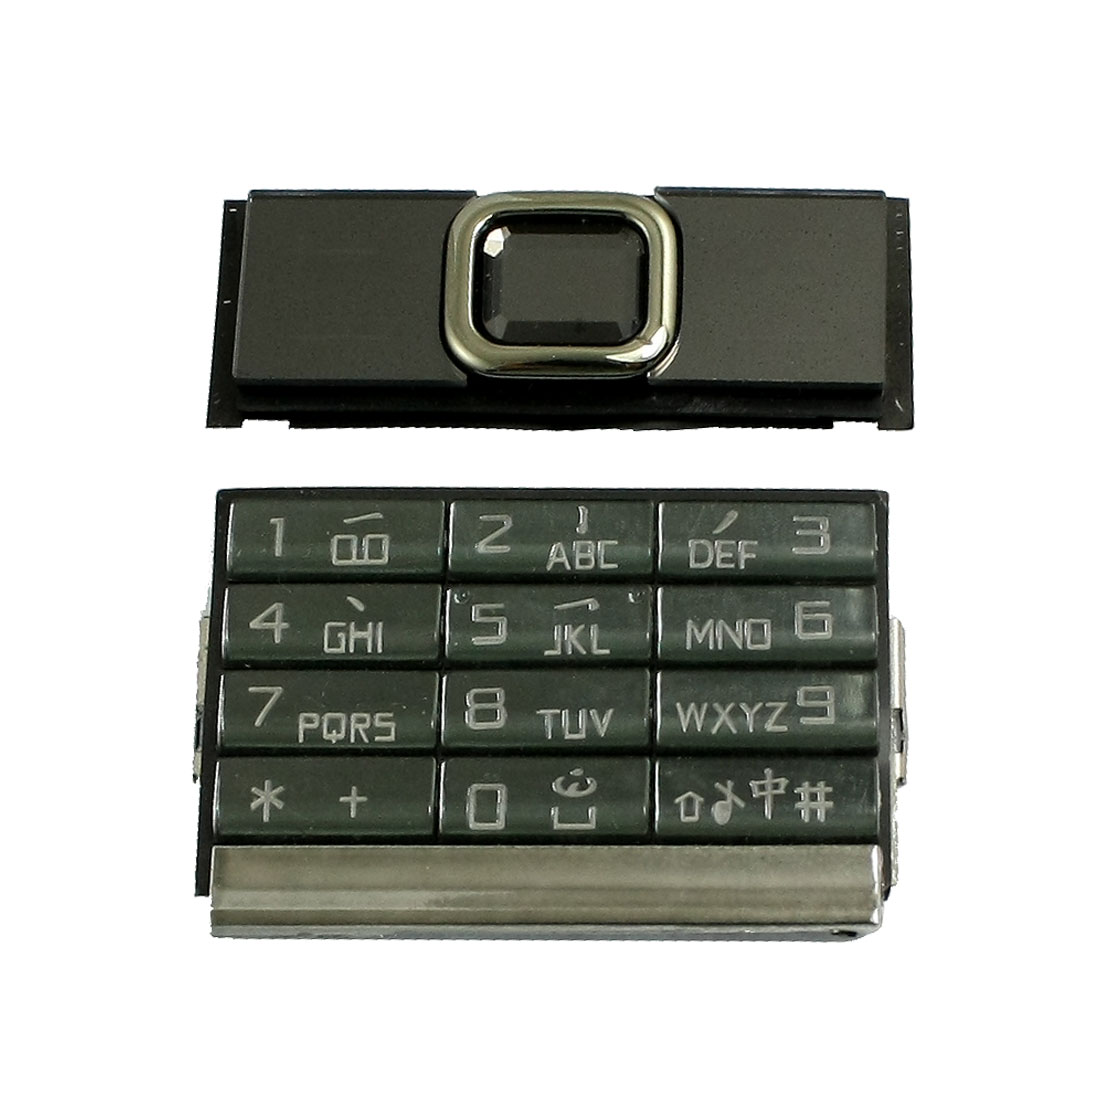 Black Shell Function Key Replaceable Keyboard for Nokia 8900